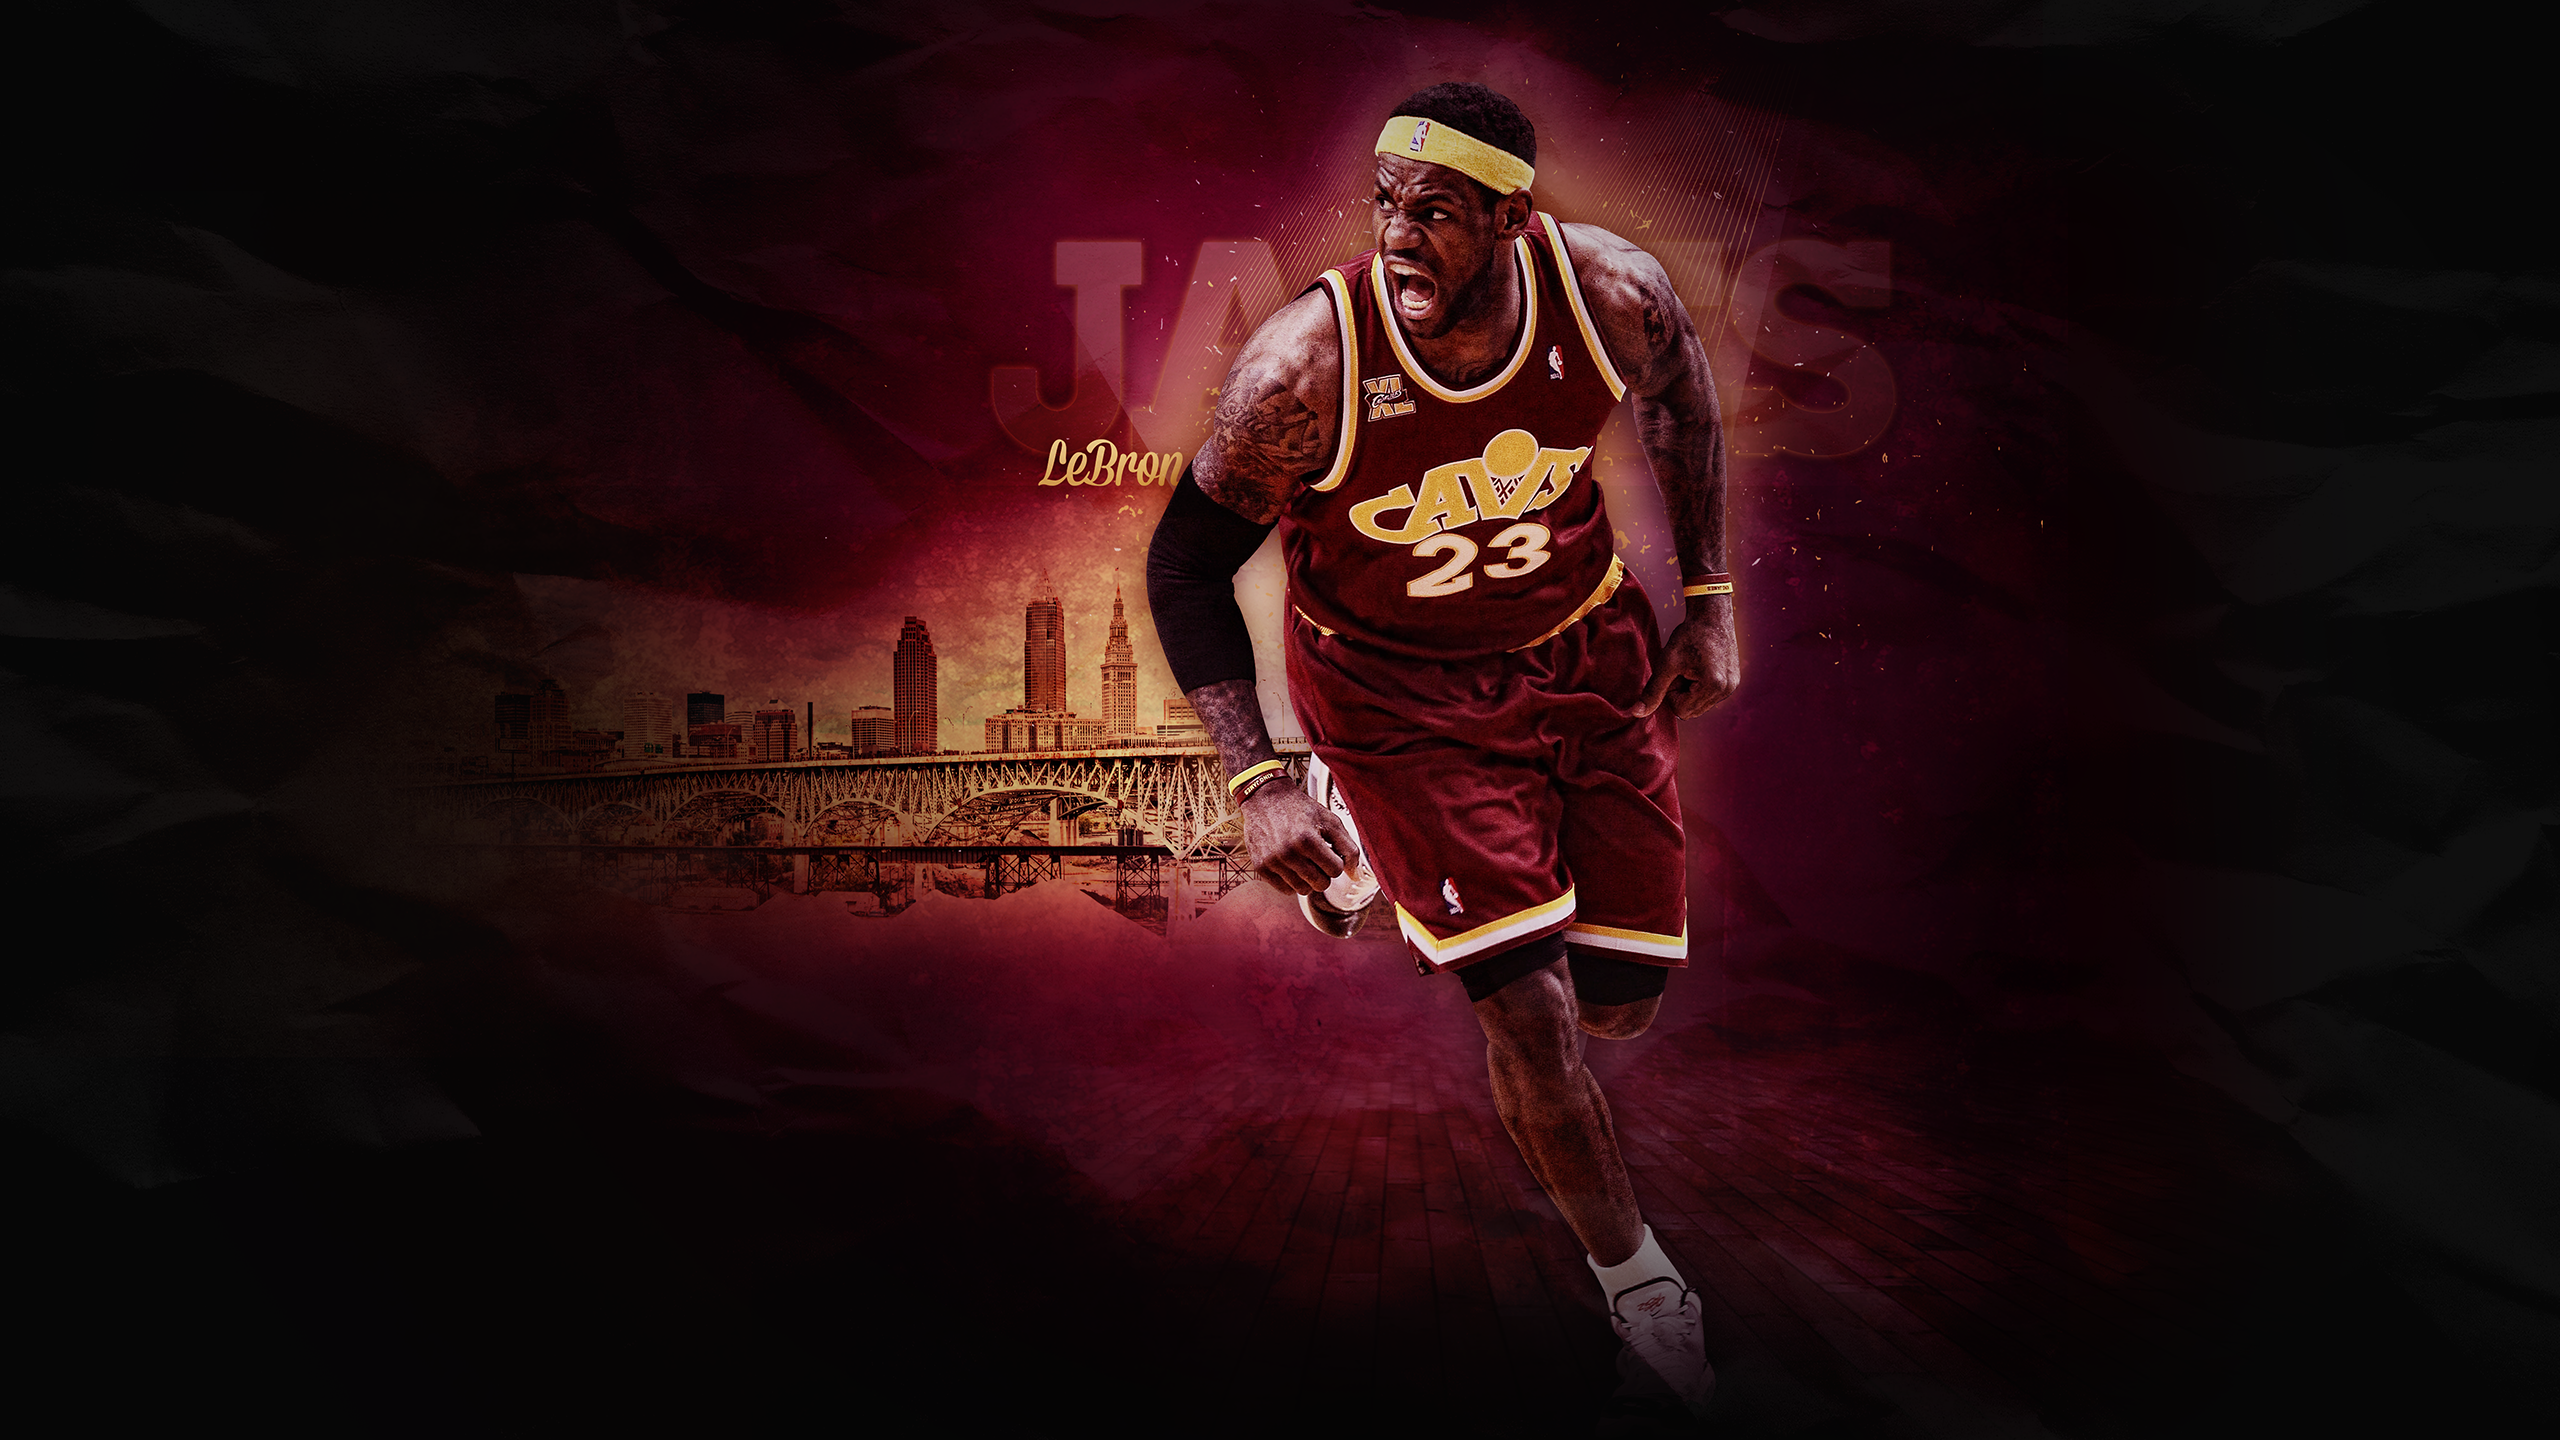 Fan Wallpapers Lebron James Pictures Lebron James Poster Nba Wallpapers